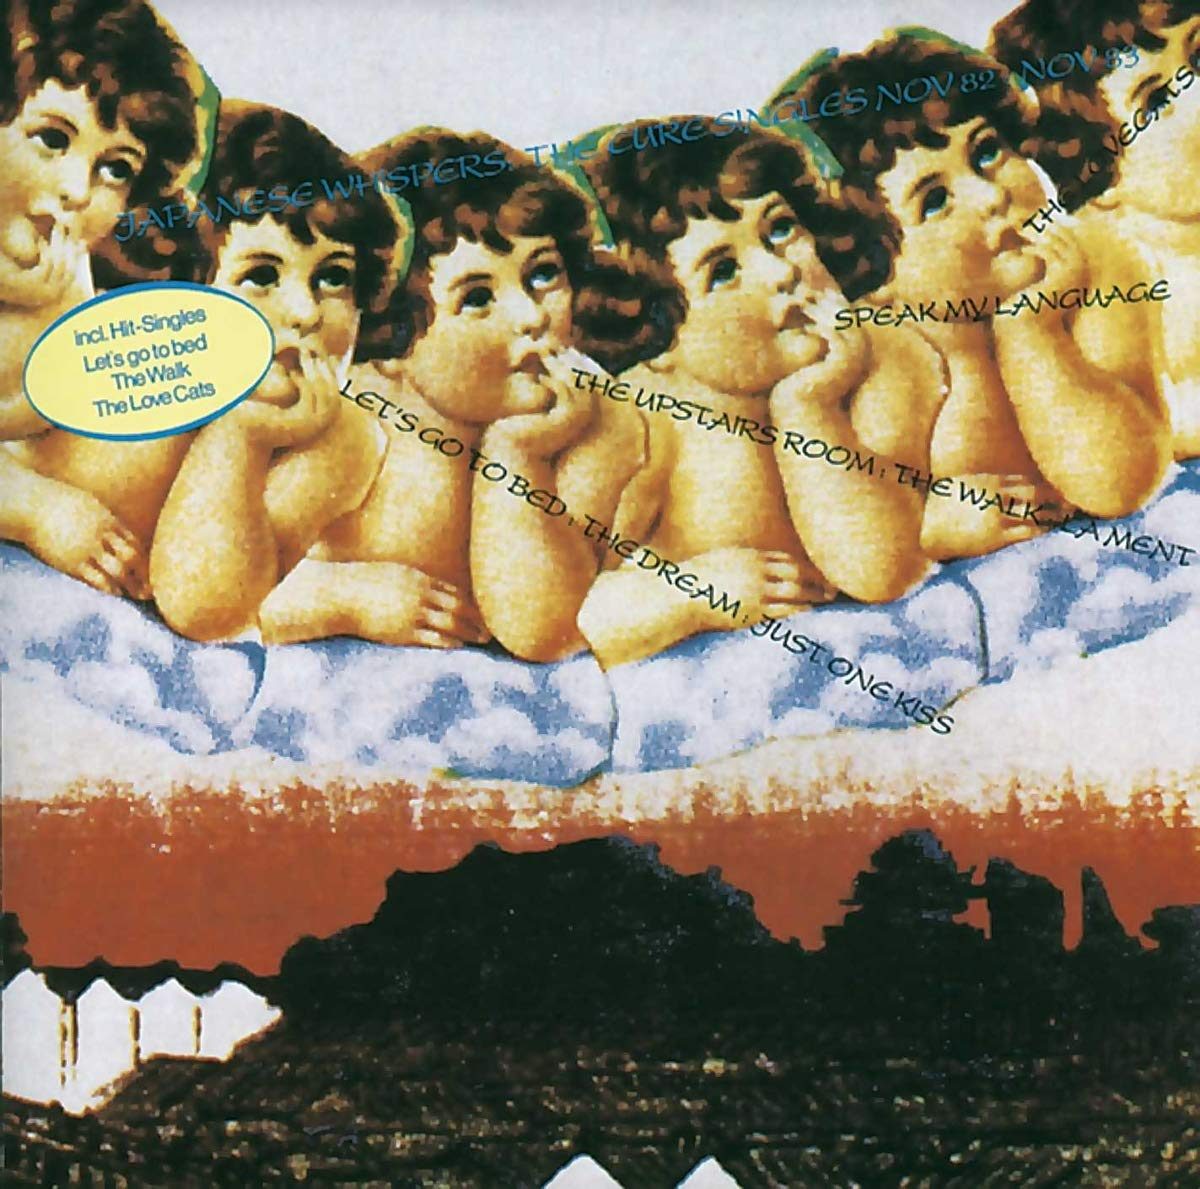 The Cure – Japanese Whispers (1983) [FLAC]